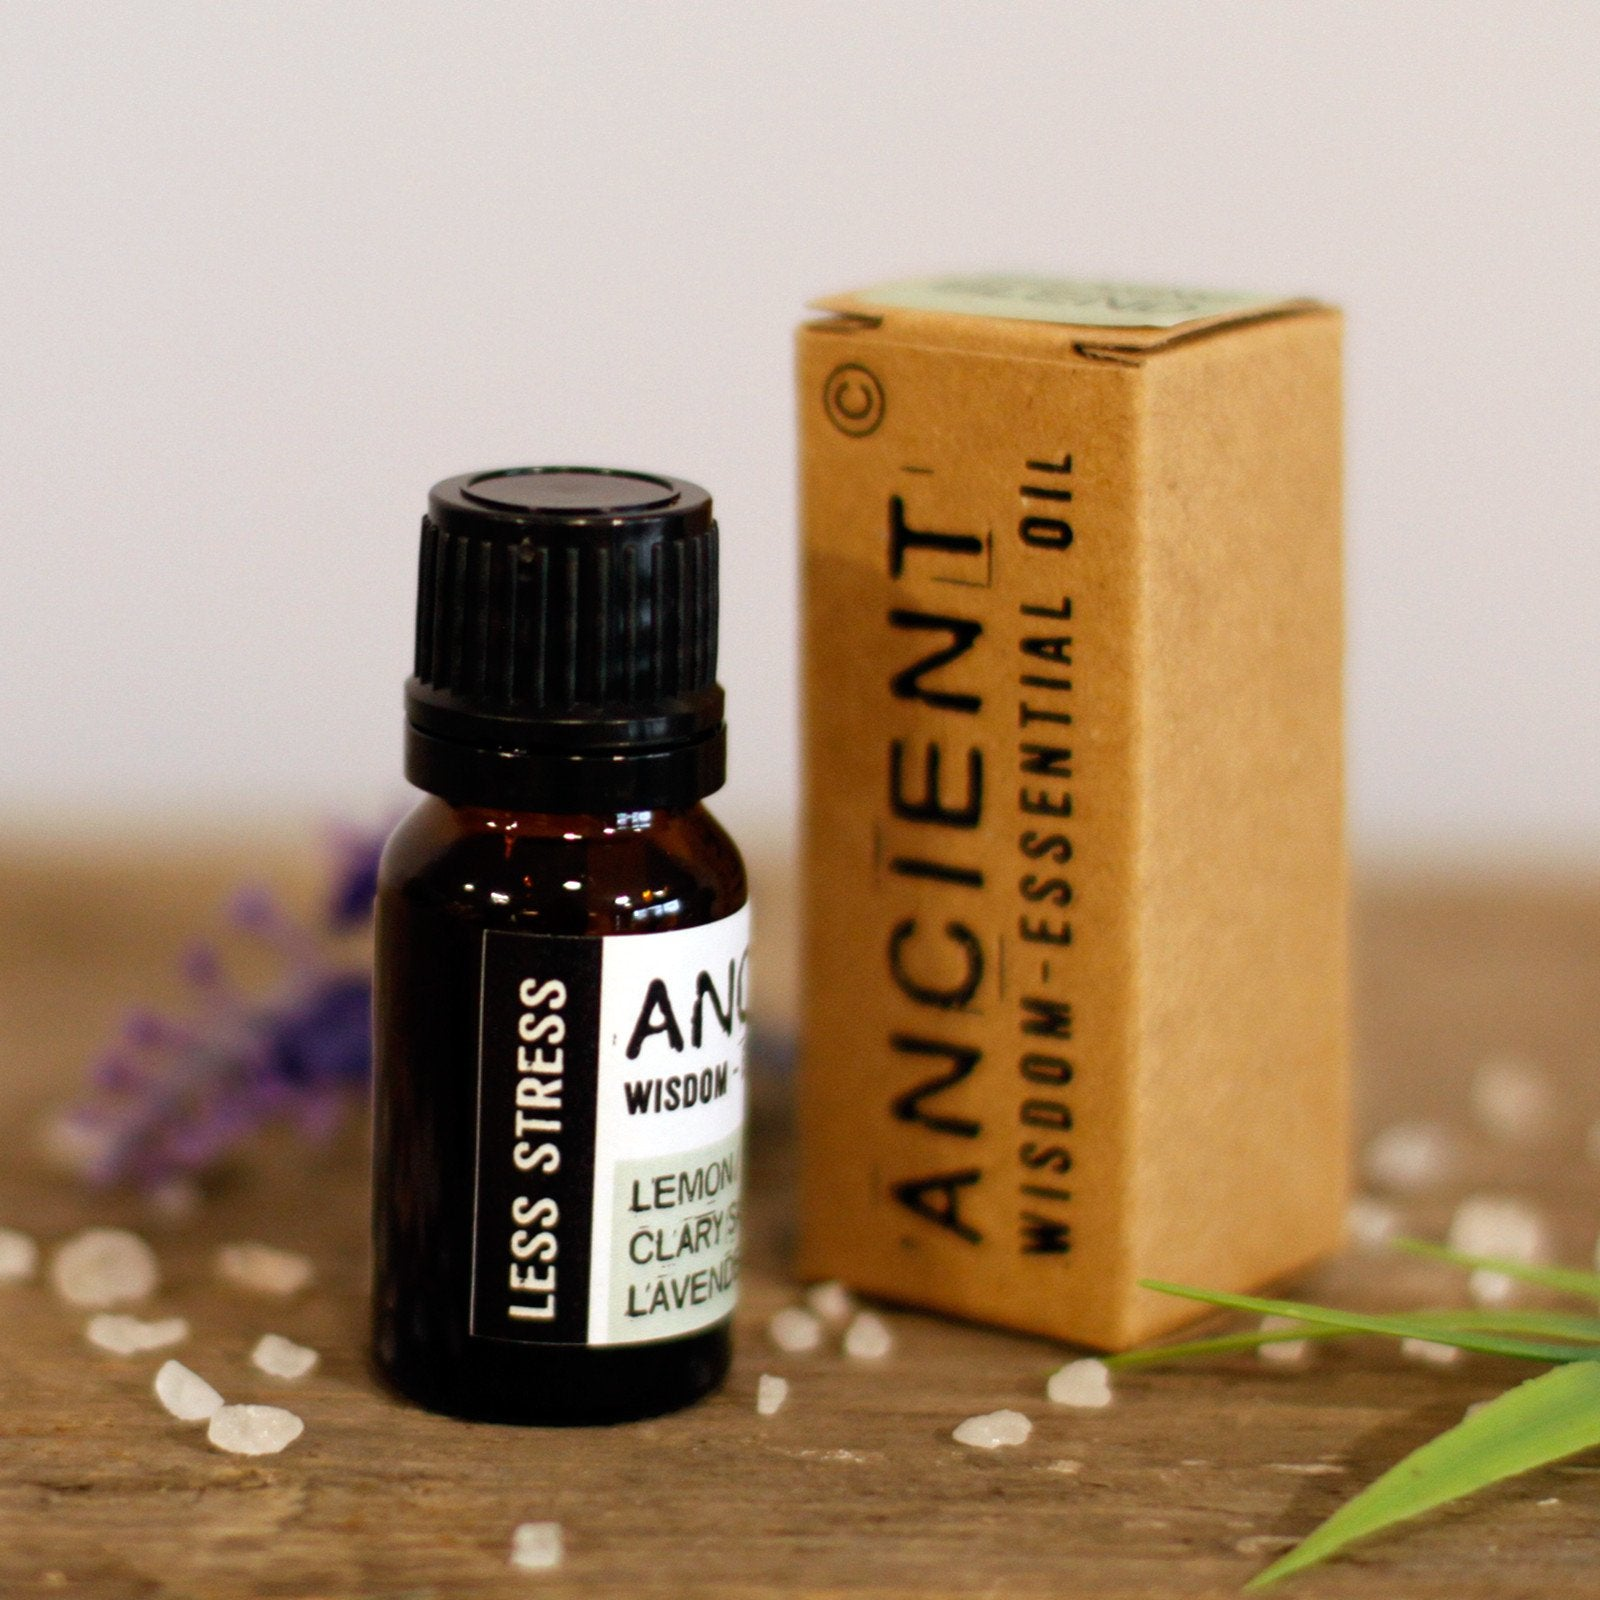 Less Stress Essential Oil Blend - 10ml - I Spy A Simple Life